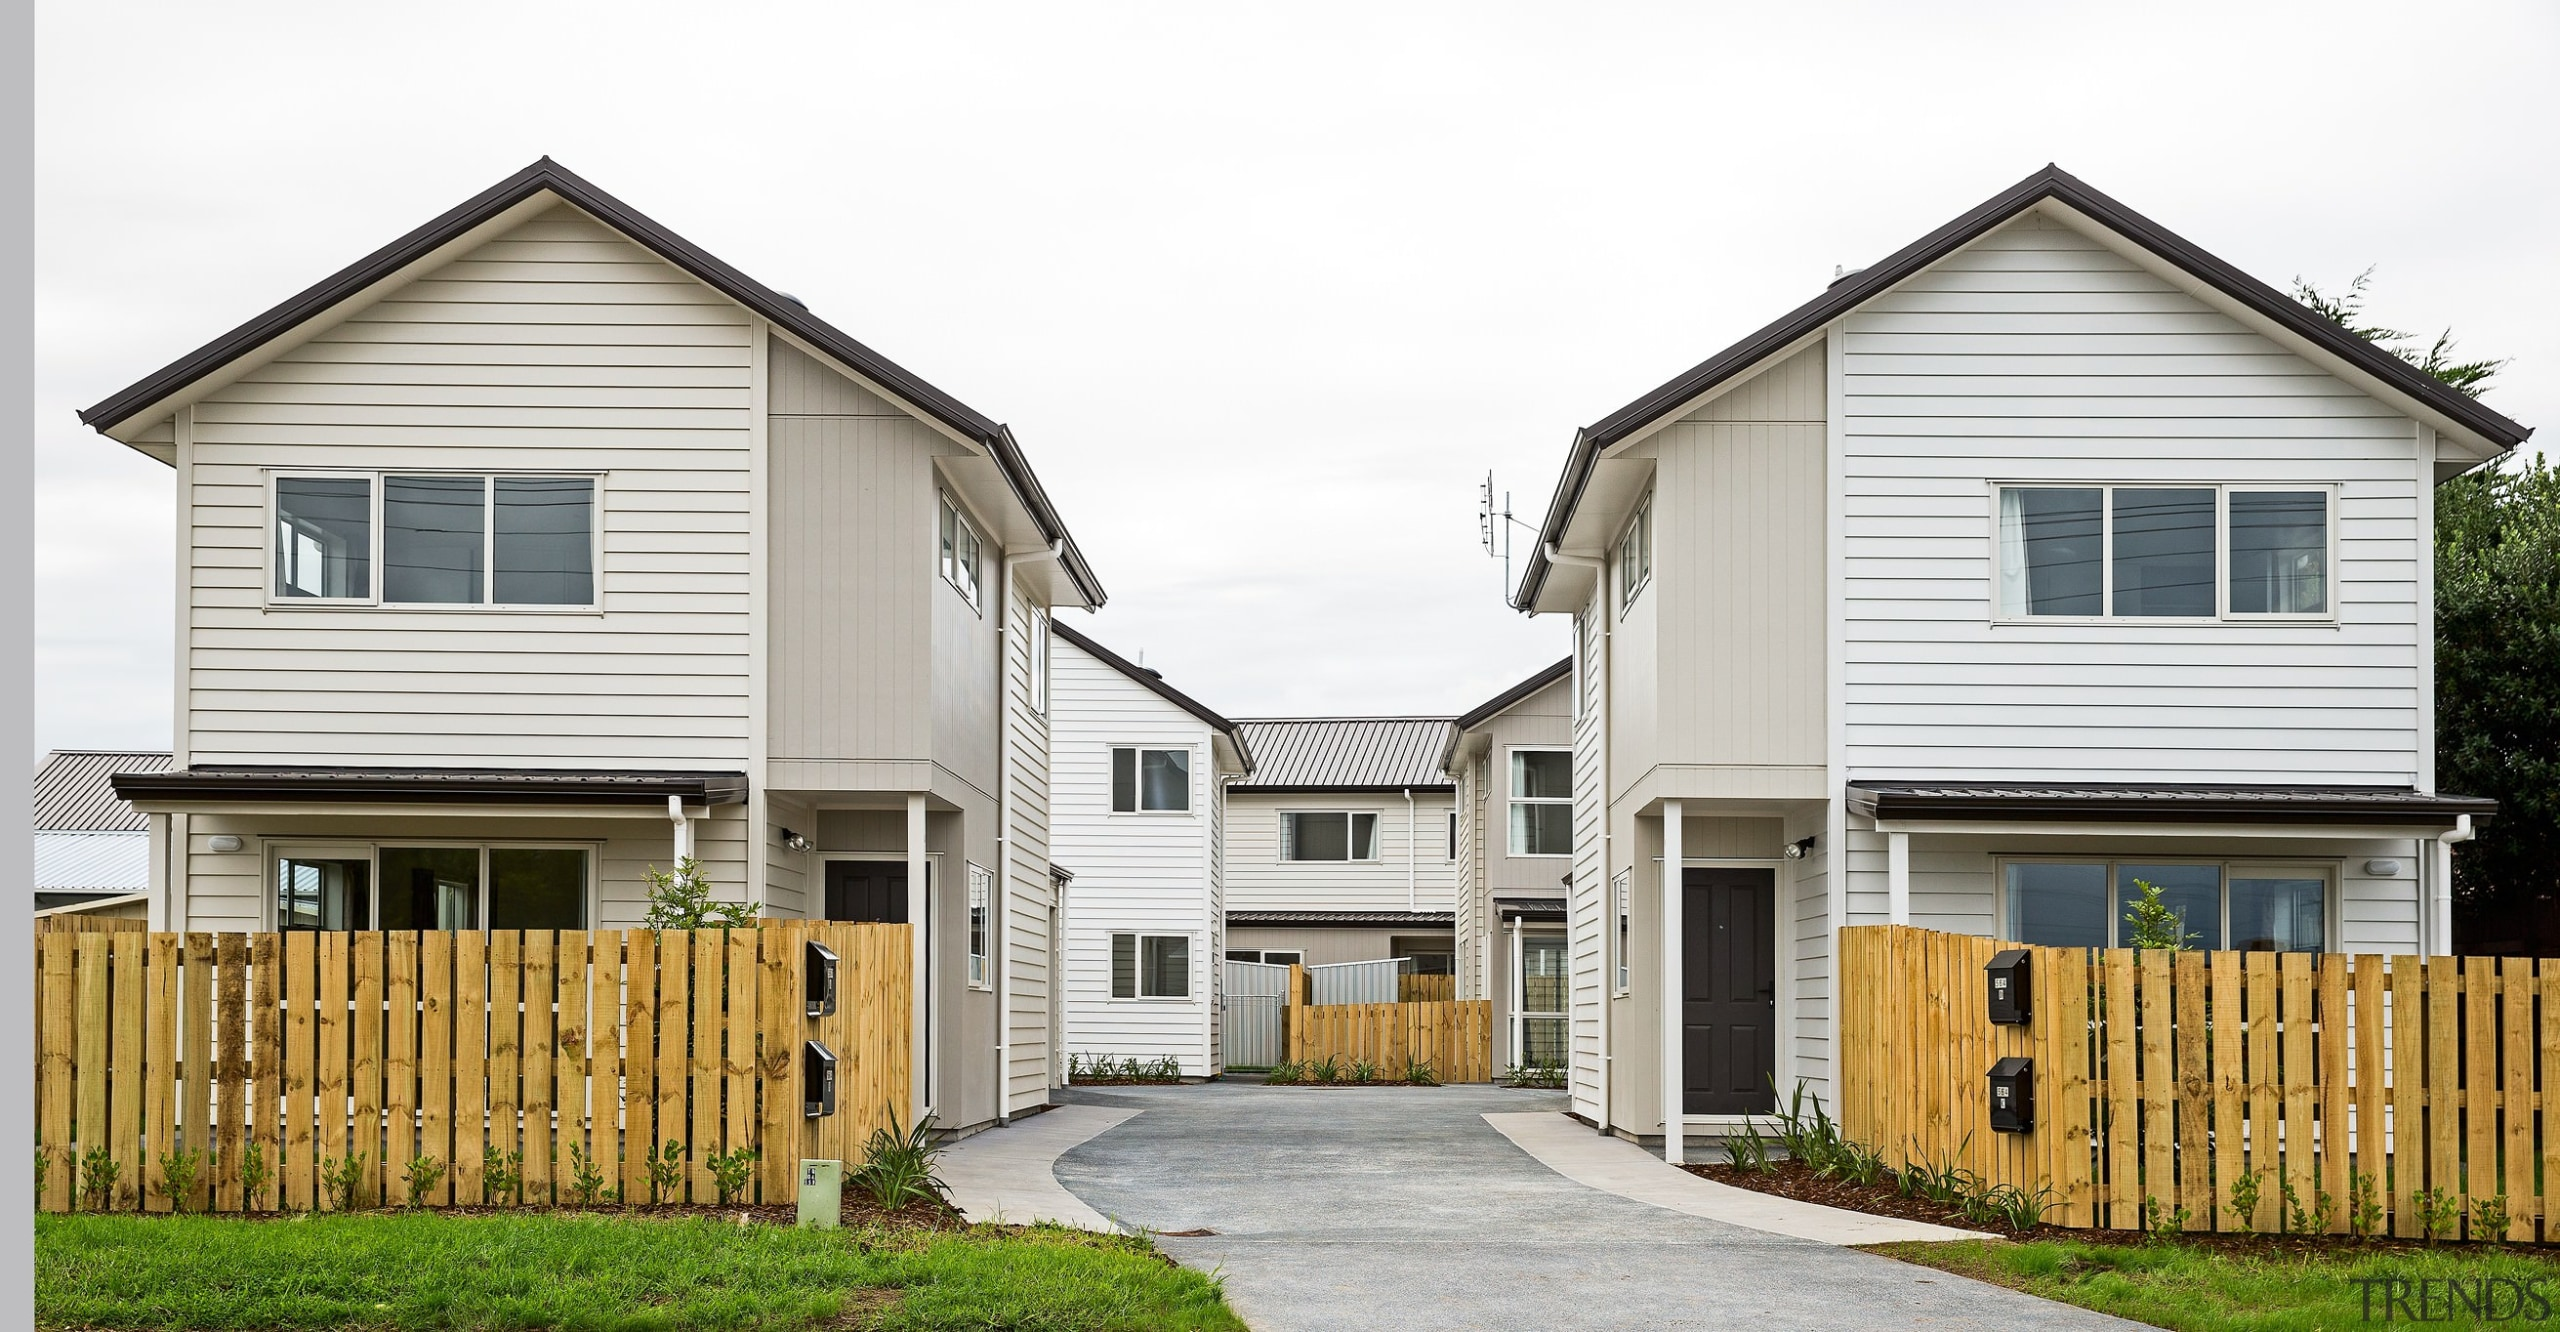 Eight new homes in the Richardson-Howell development, owned building, cottage, elevation, estate, facade, farmhouse, home, house, neighbourhood, property, real estate, residential area, siding, suburb, white